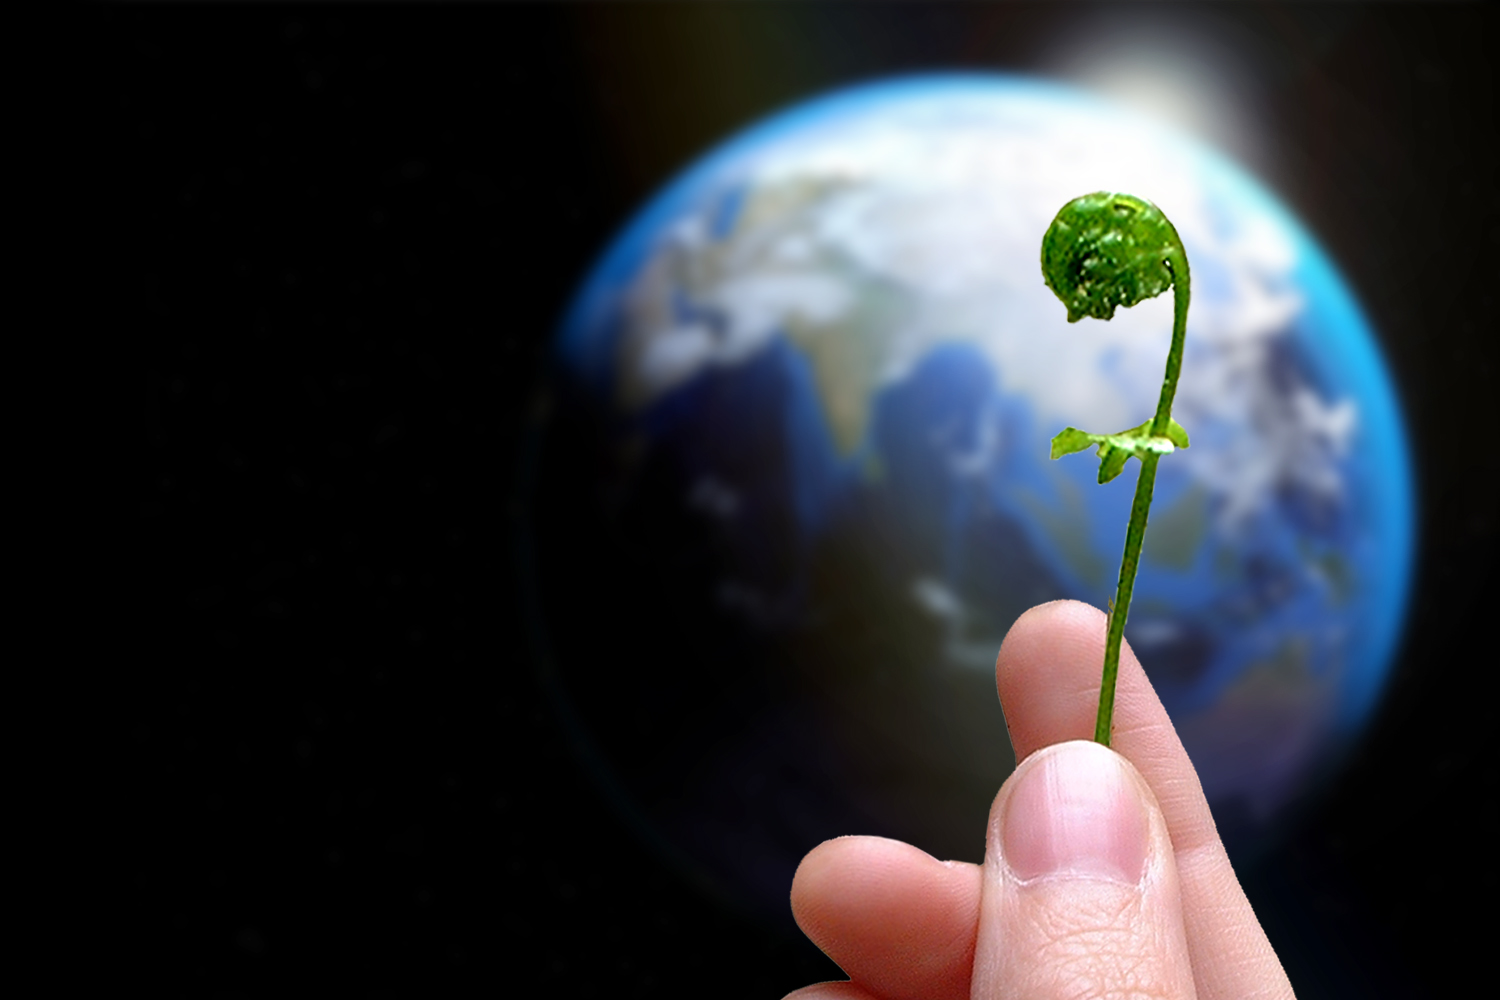 Rhiannon's hand holding a fiddlehead fern with a photo of planet Earth in the background